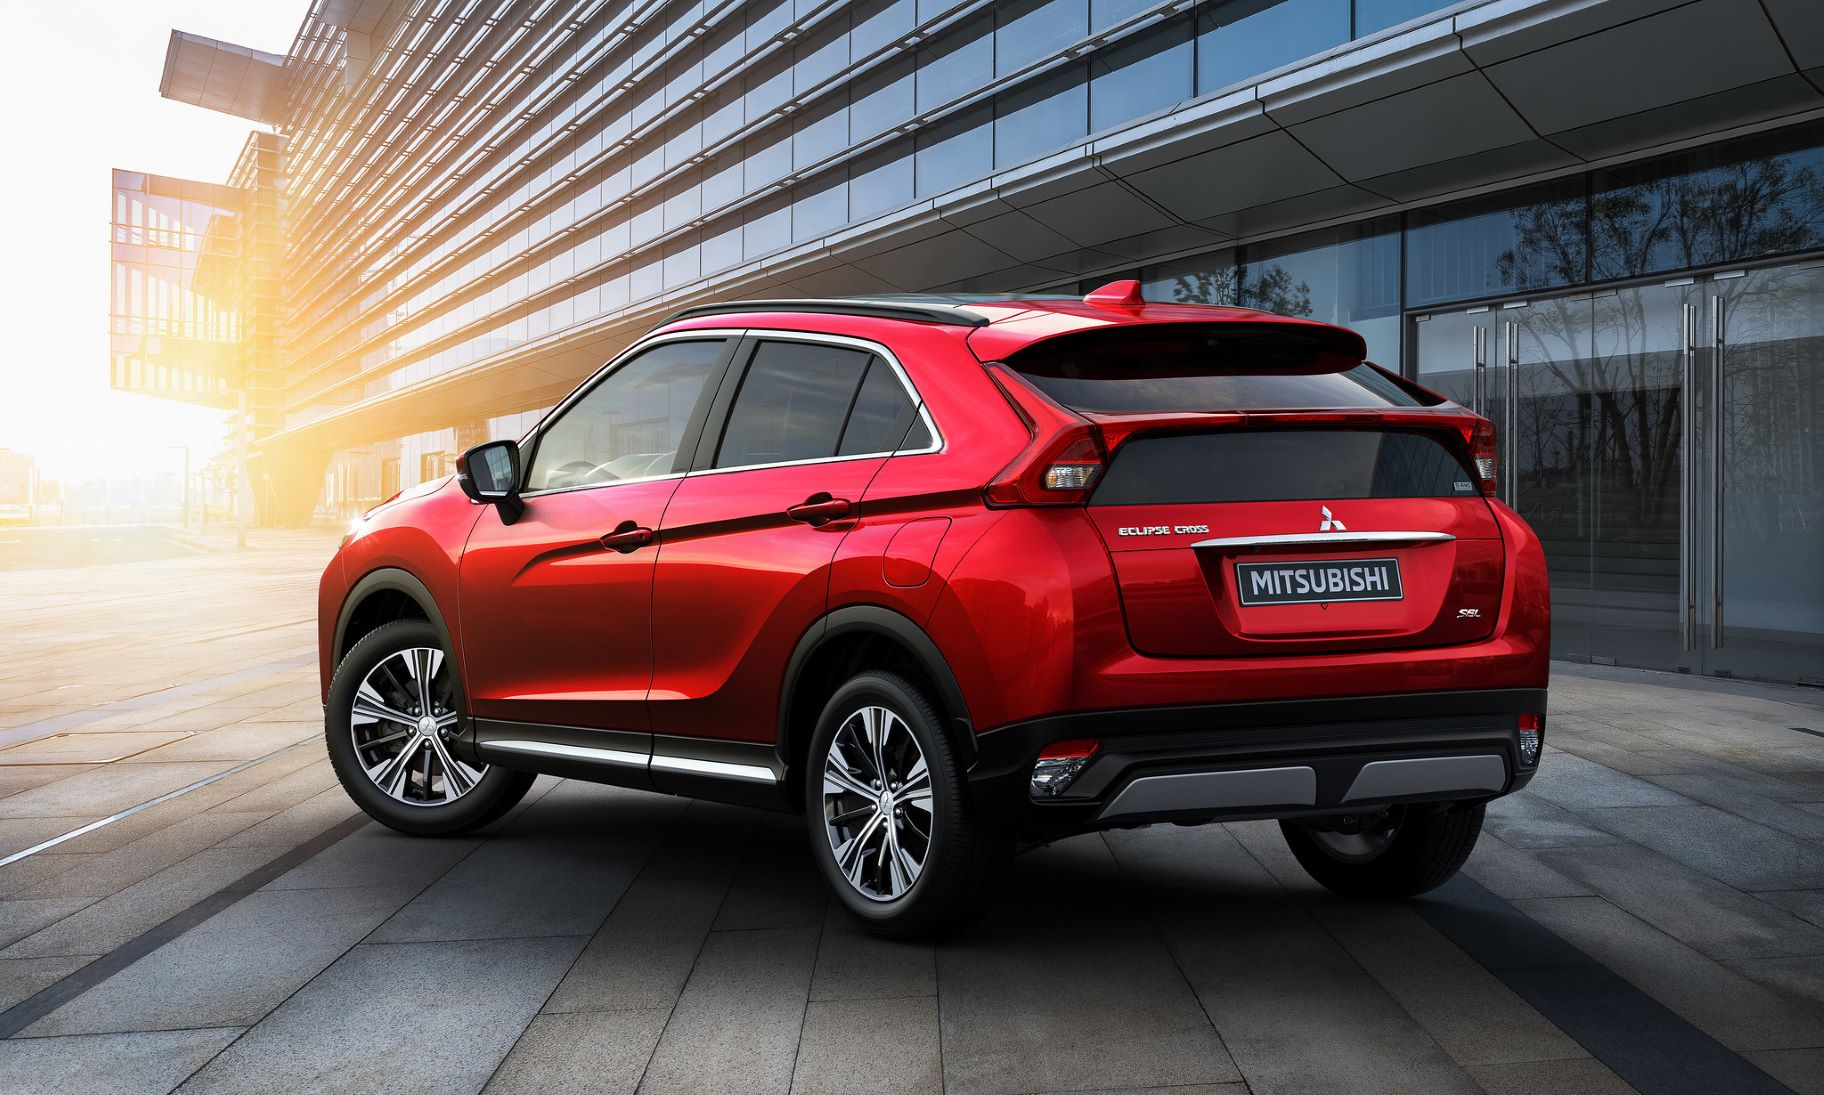 2019 Mitsubishi Eclipse Cross | Charleston, WV